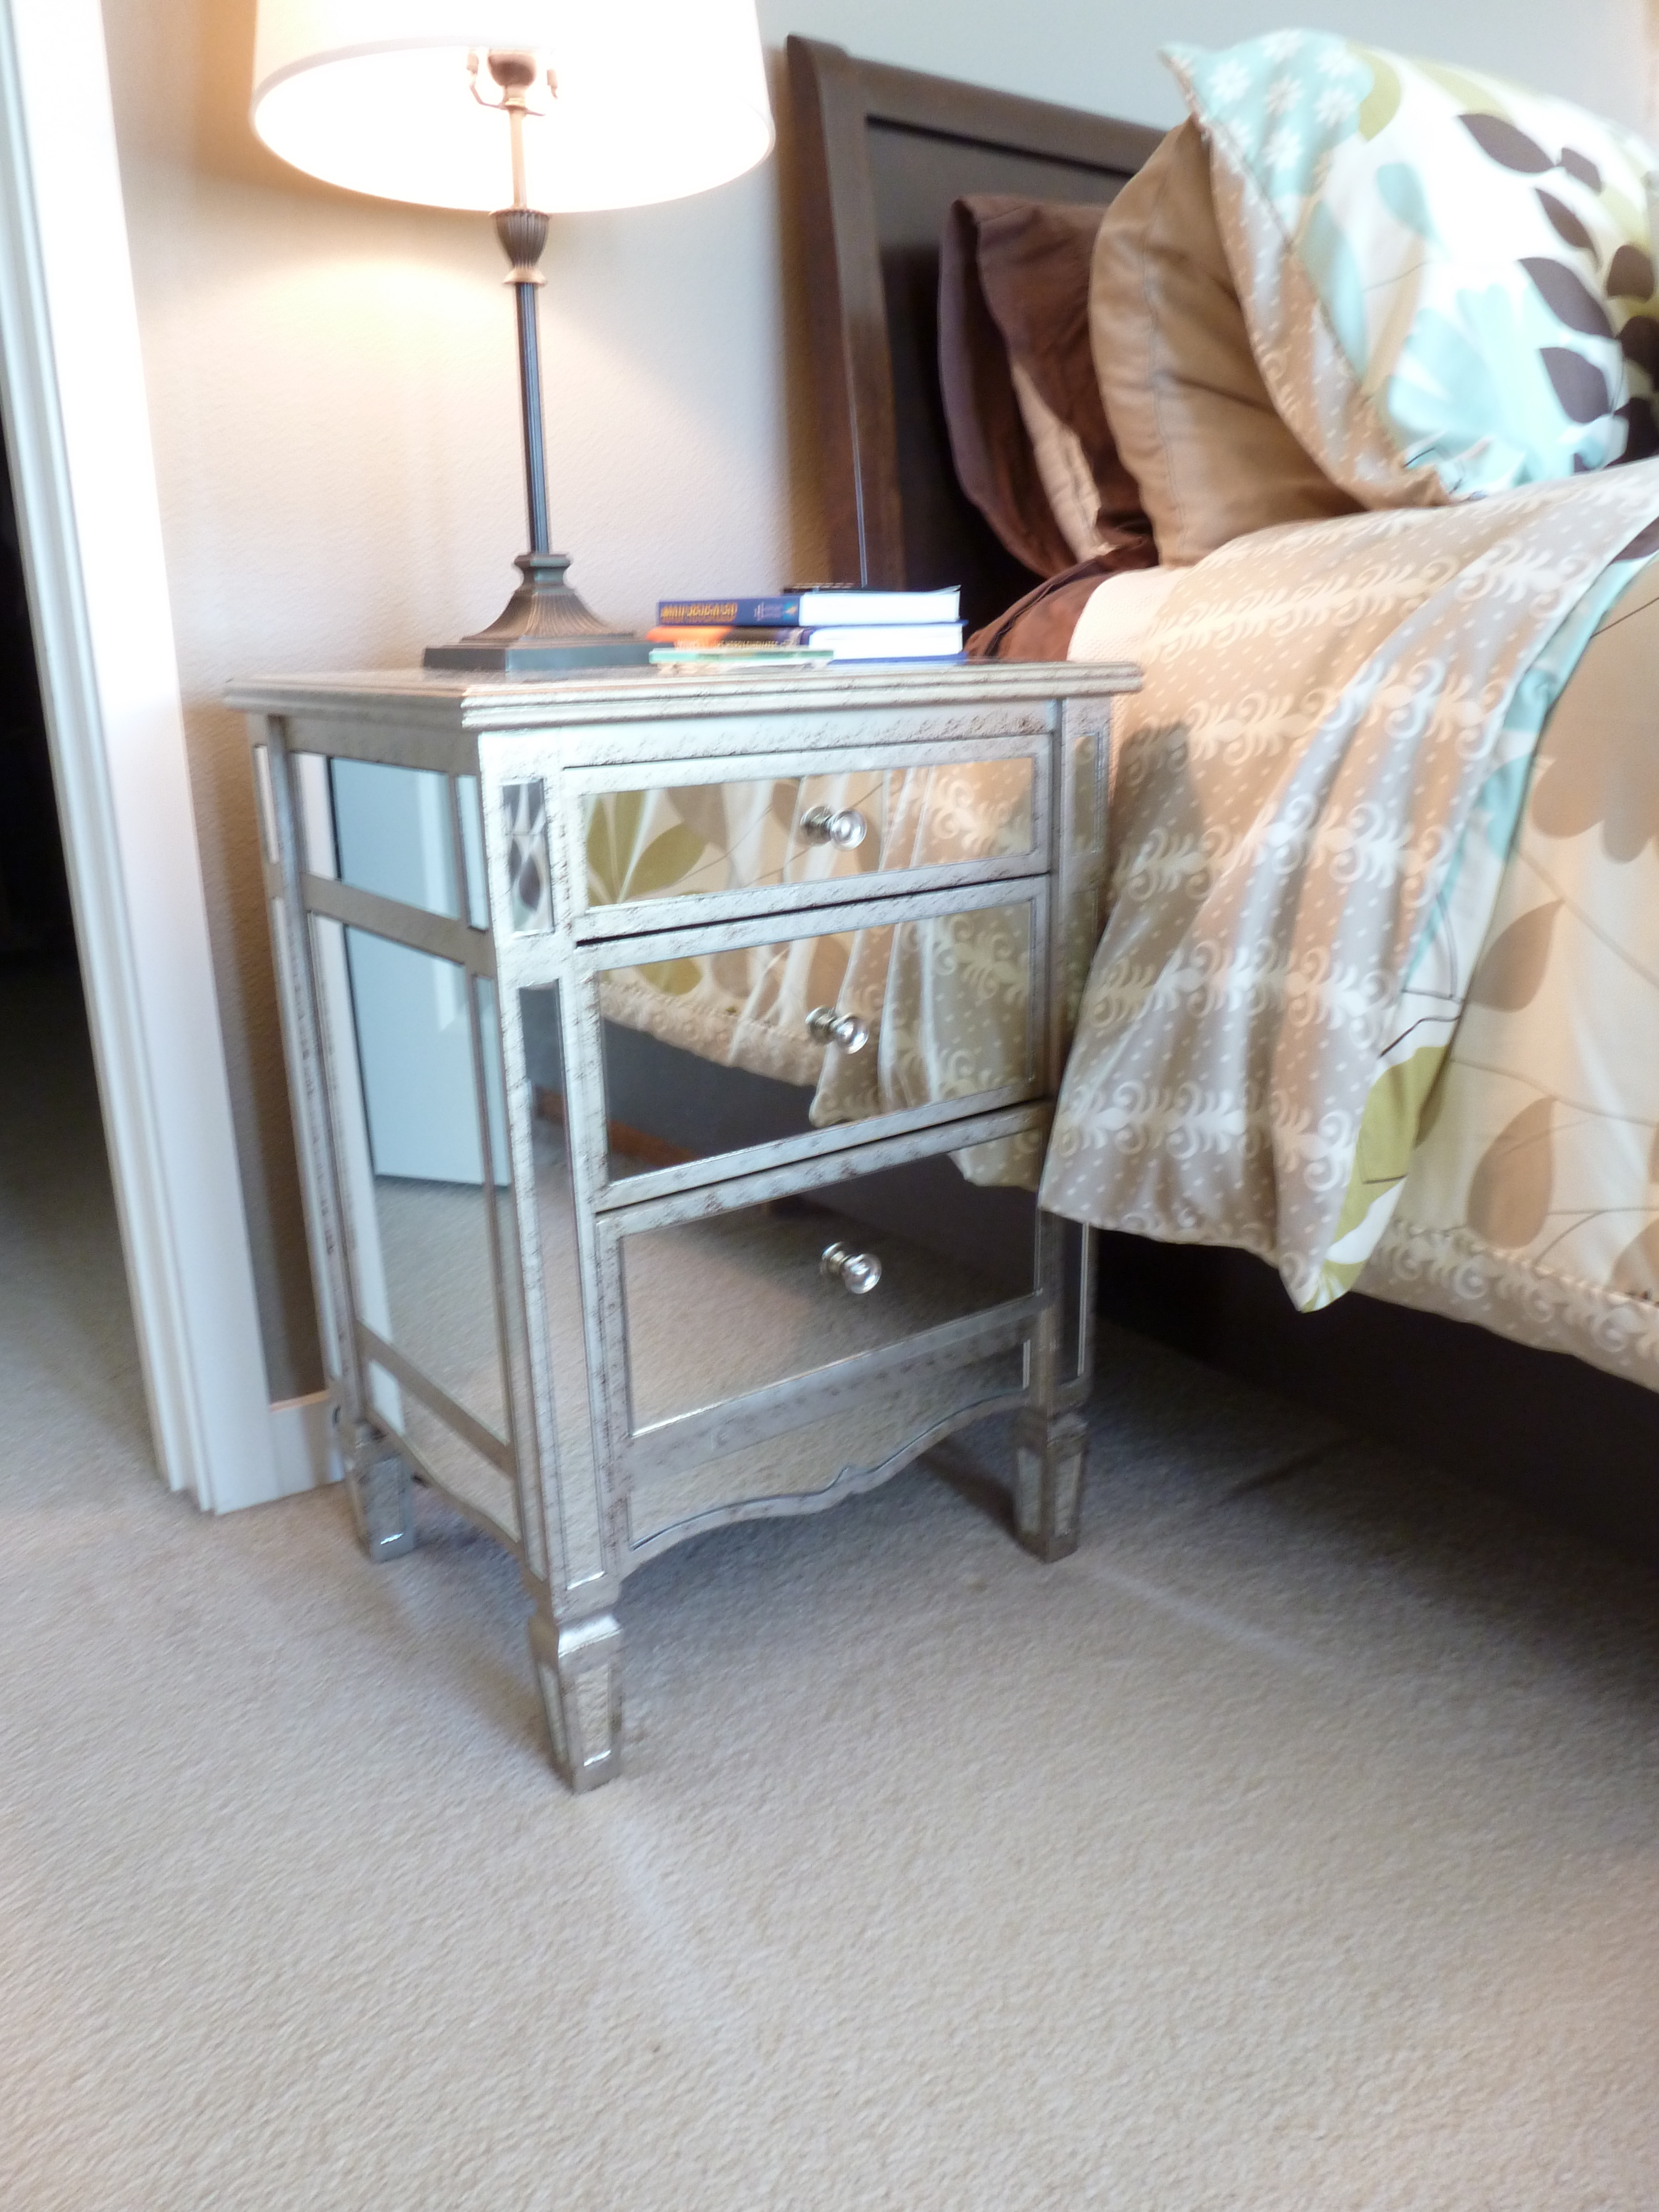 Master bedroom teller all about it and the source on those nightstands solutioingenieria Choice Image